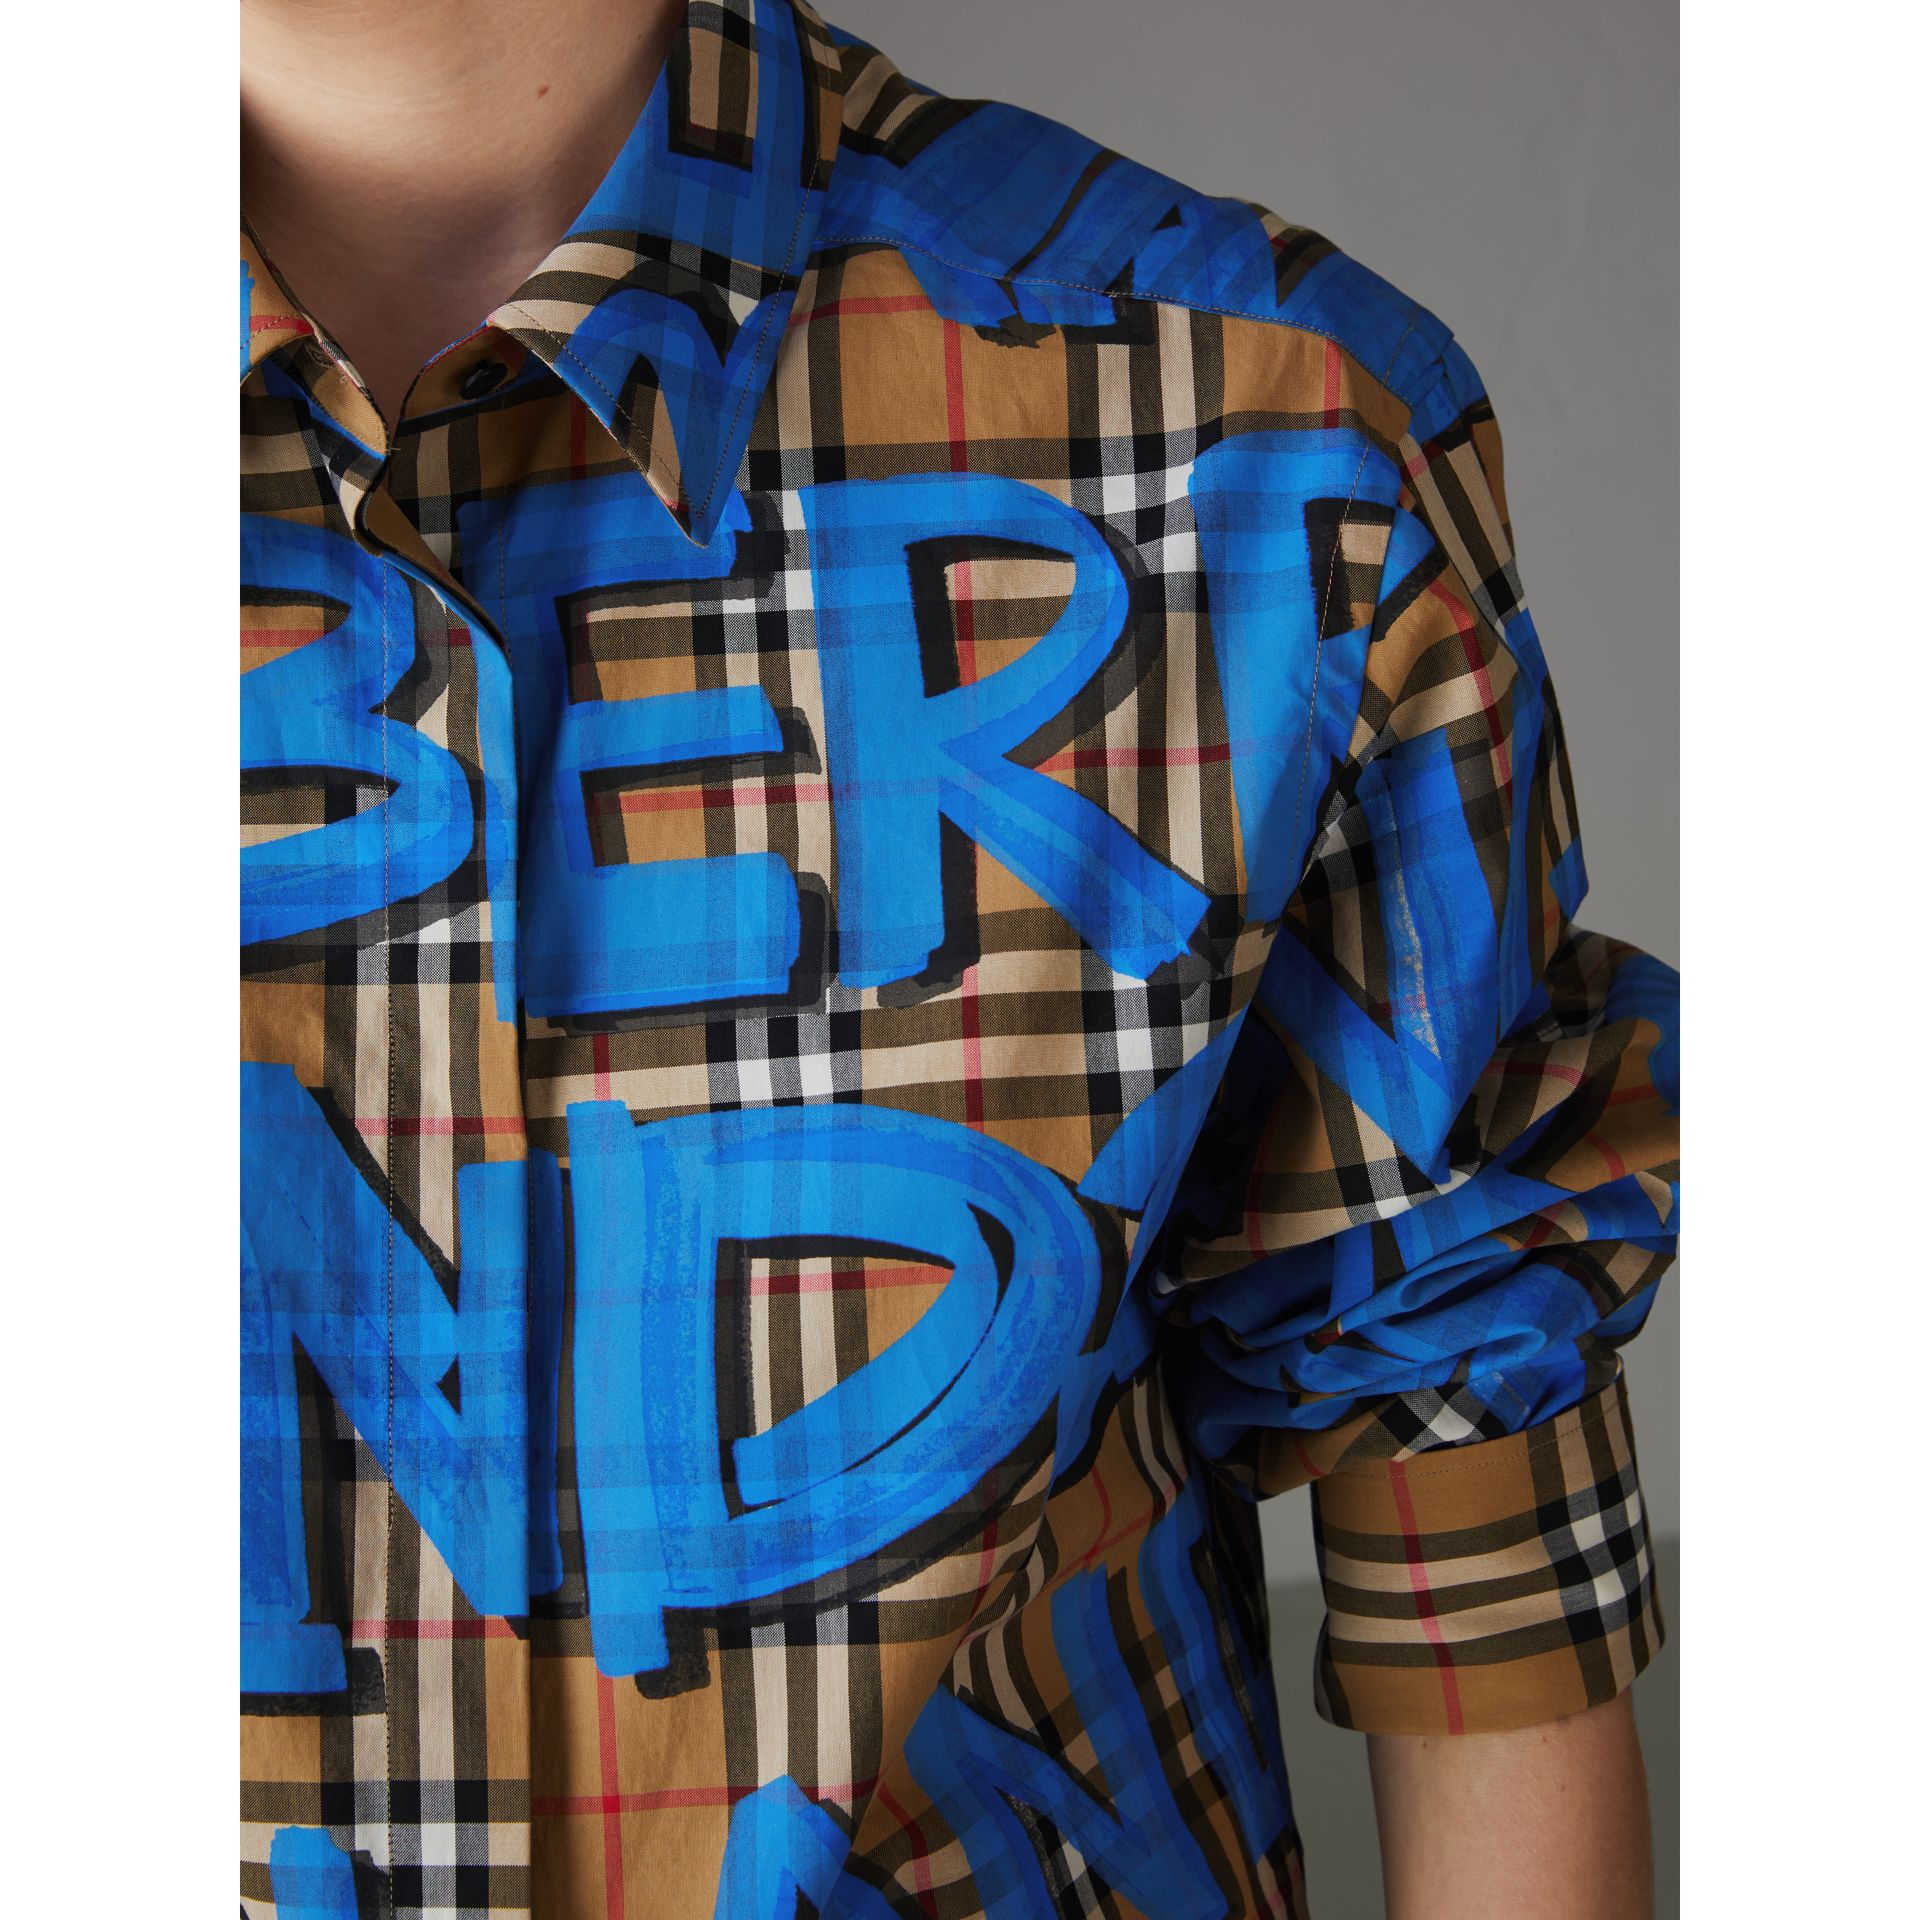 Graffiti Print Vintage Check Cotton Shirt in Bright Blue - Women | Burberry - gallery image 1